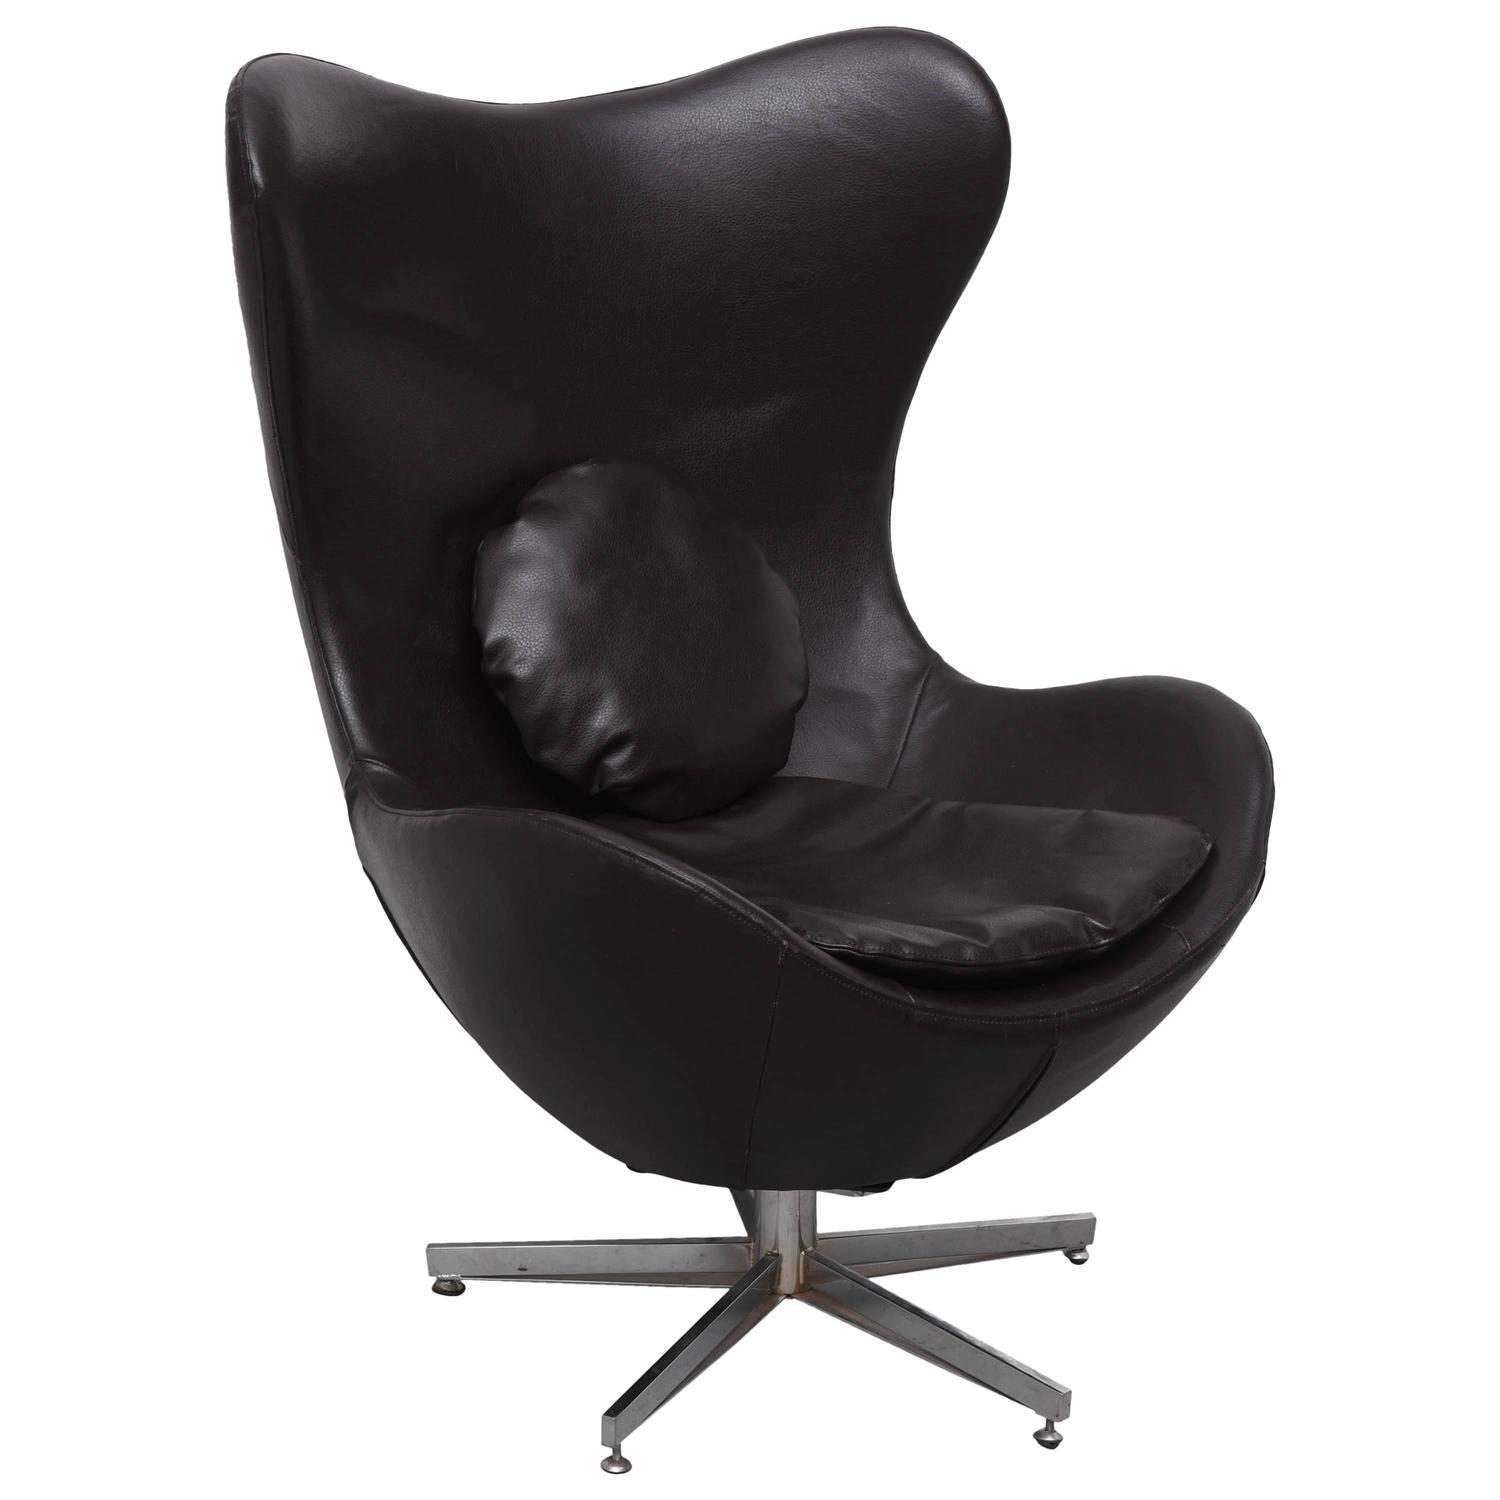 Leather Egg Chair In Arne Jacobsen Style Denmark 1960s